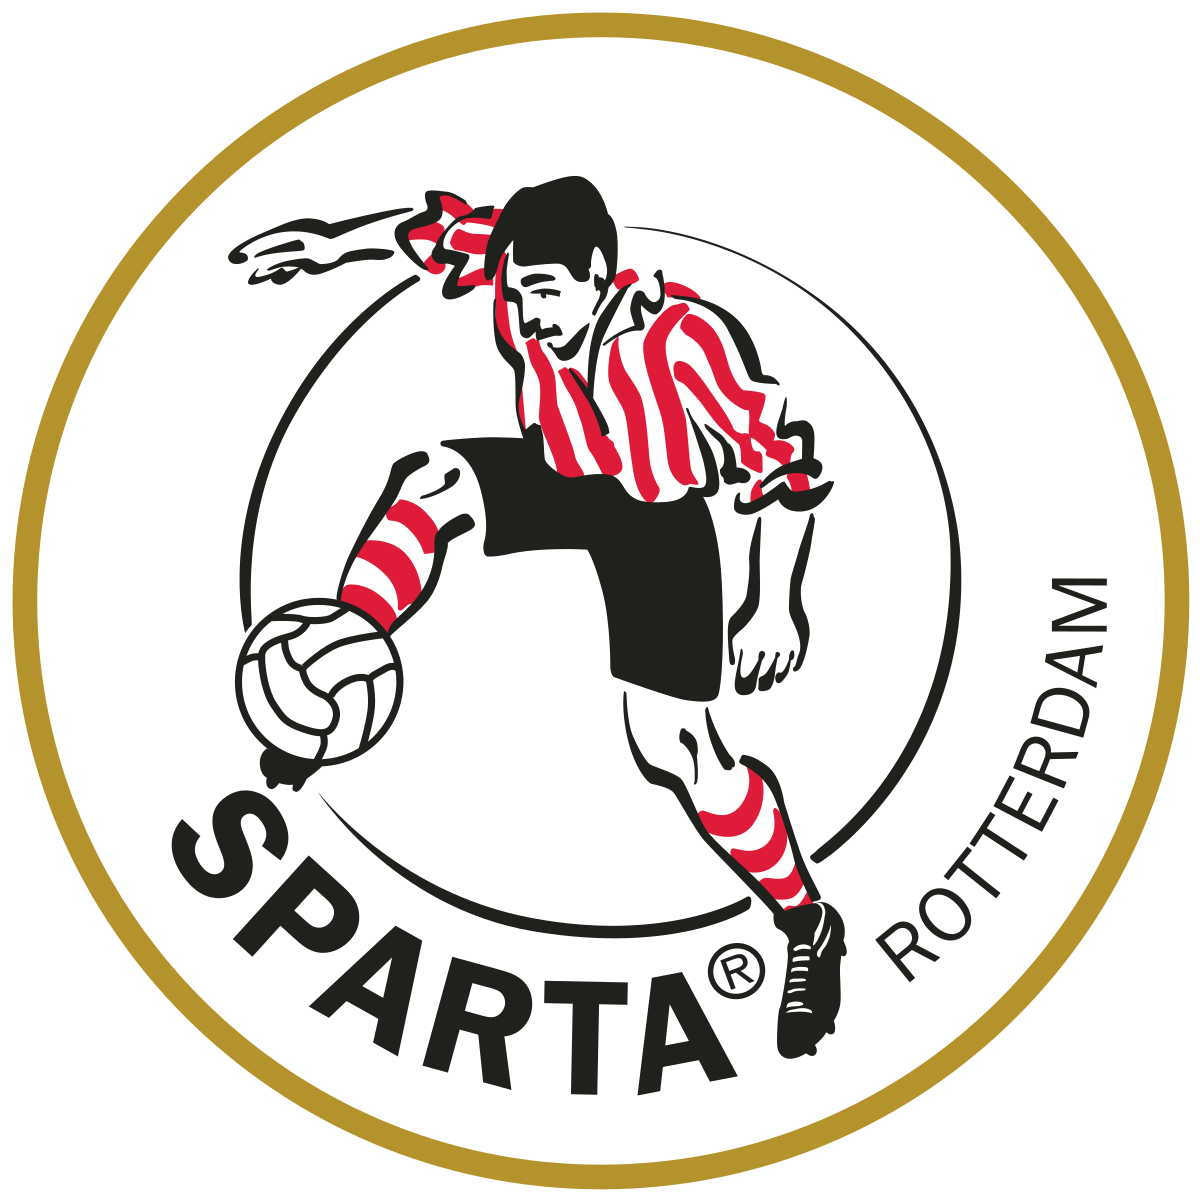 https://socceracademybreda.nl/wp-content/uploads/2020/10/Sparta-1.png